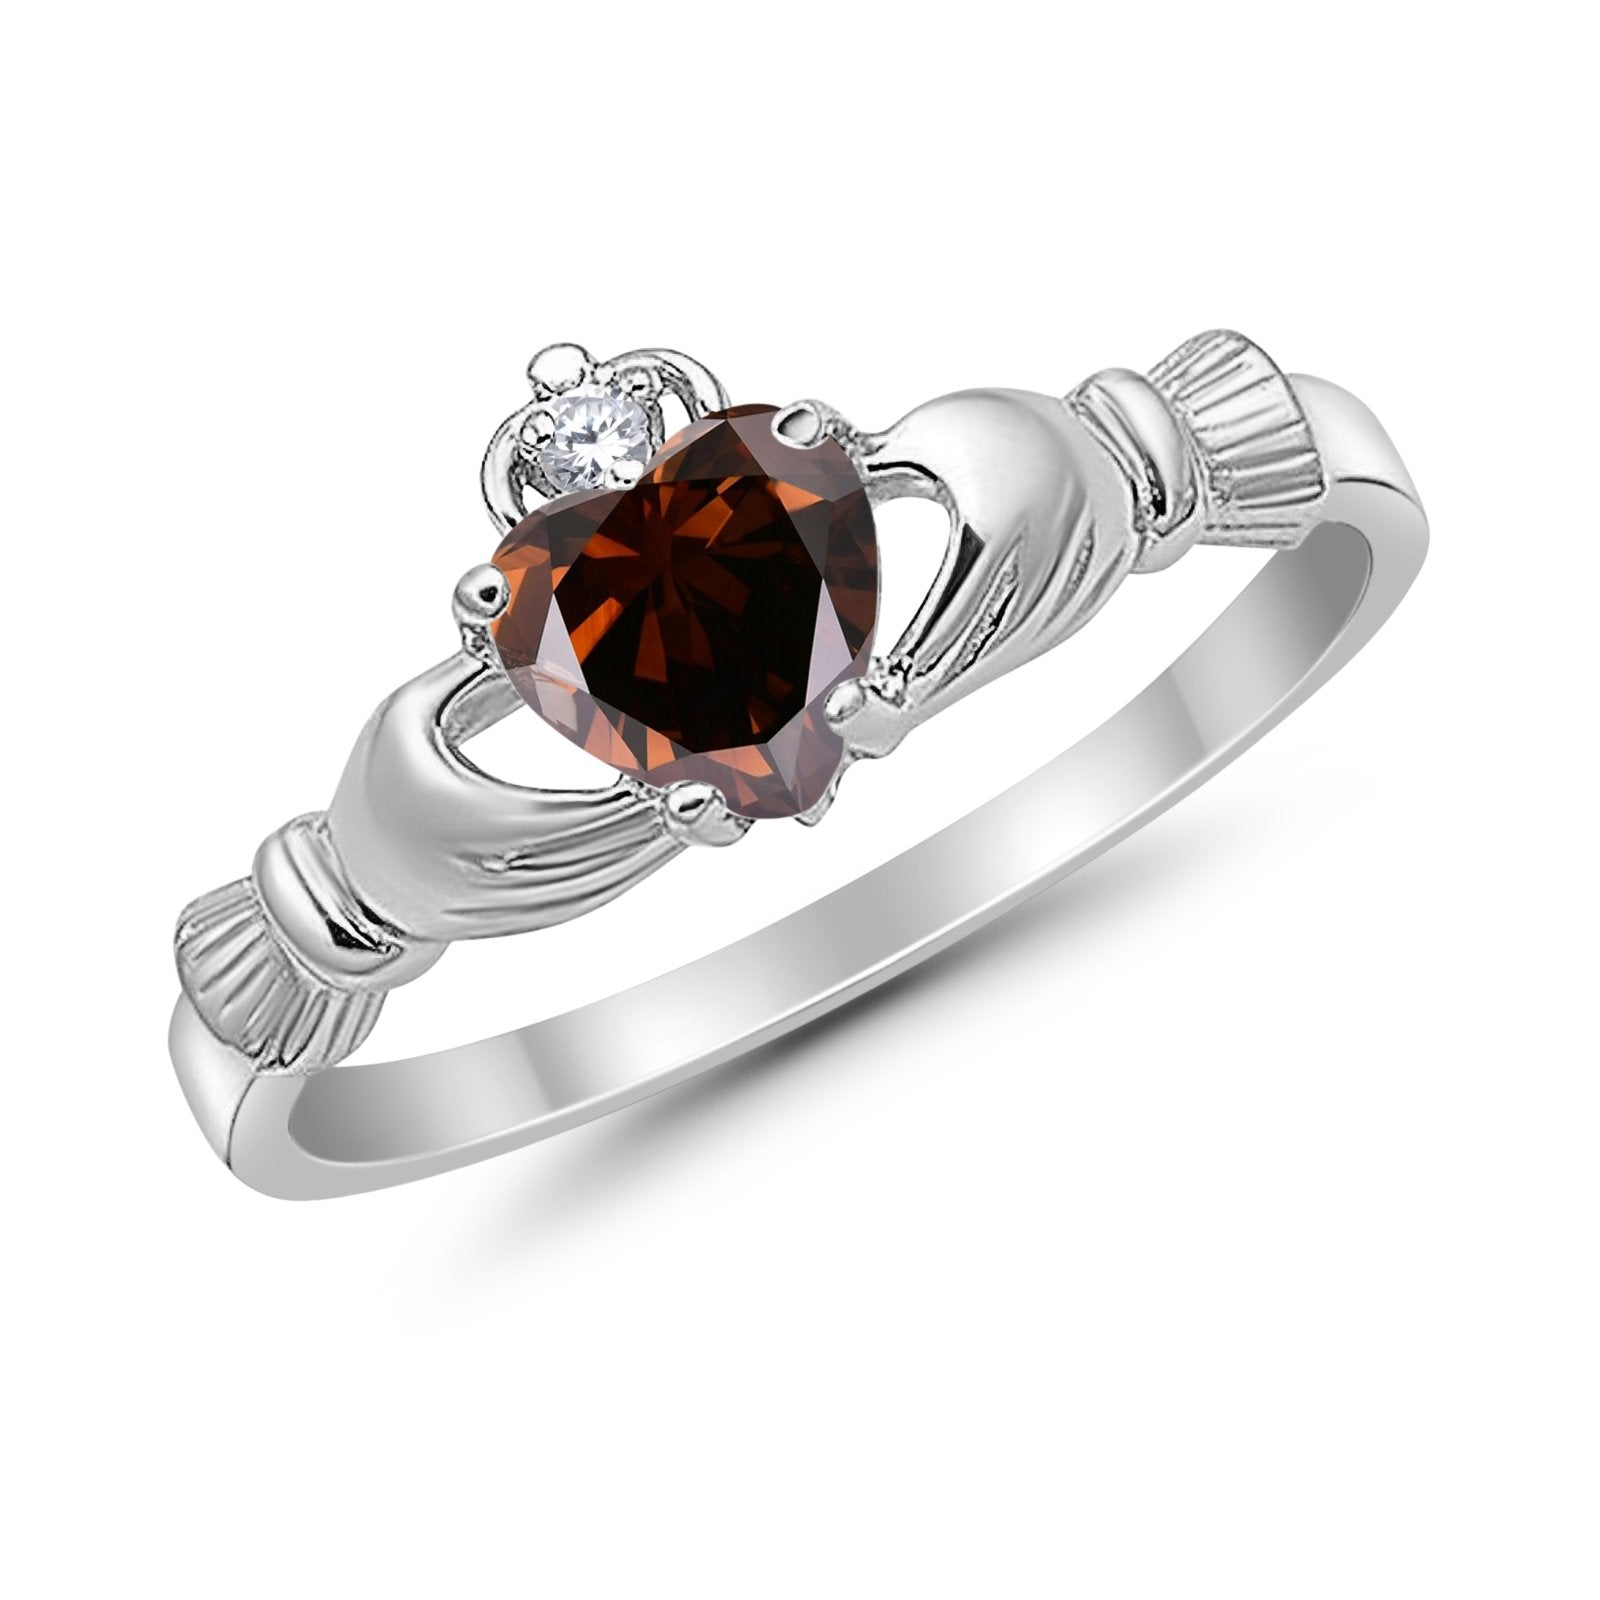 Claddagh Accent Heart Simulated CZ Wedding Ring 925 Sterling Silver